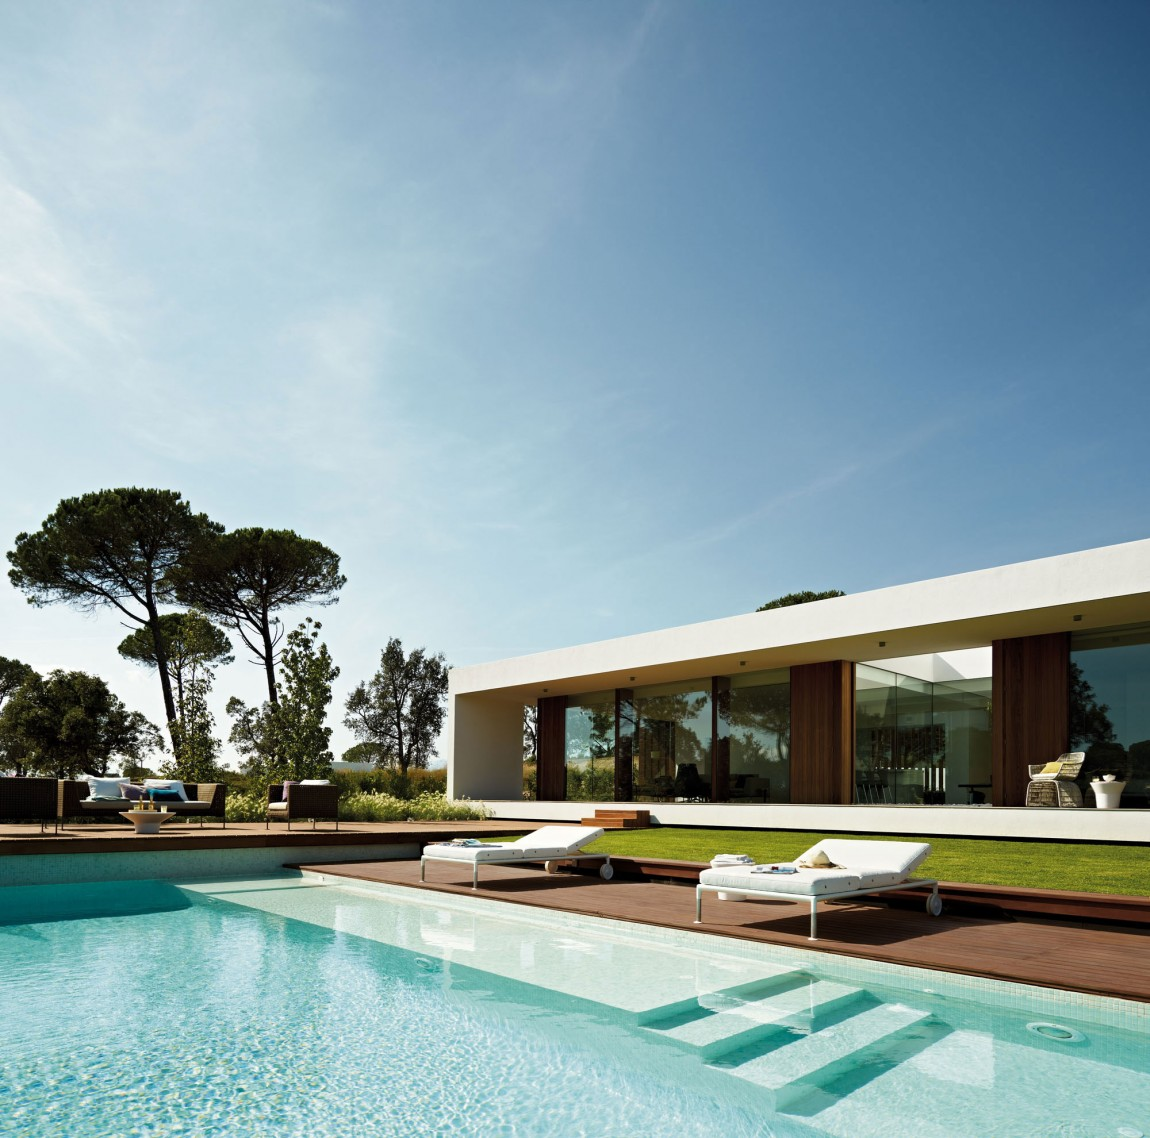 World of architecture modern villa indigo catalonia spain - Modern house with pool ...